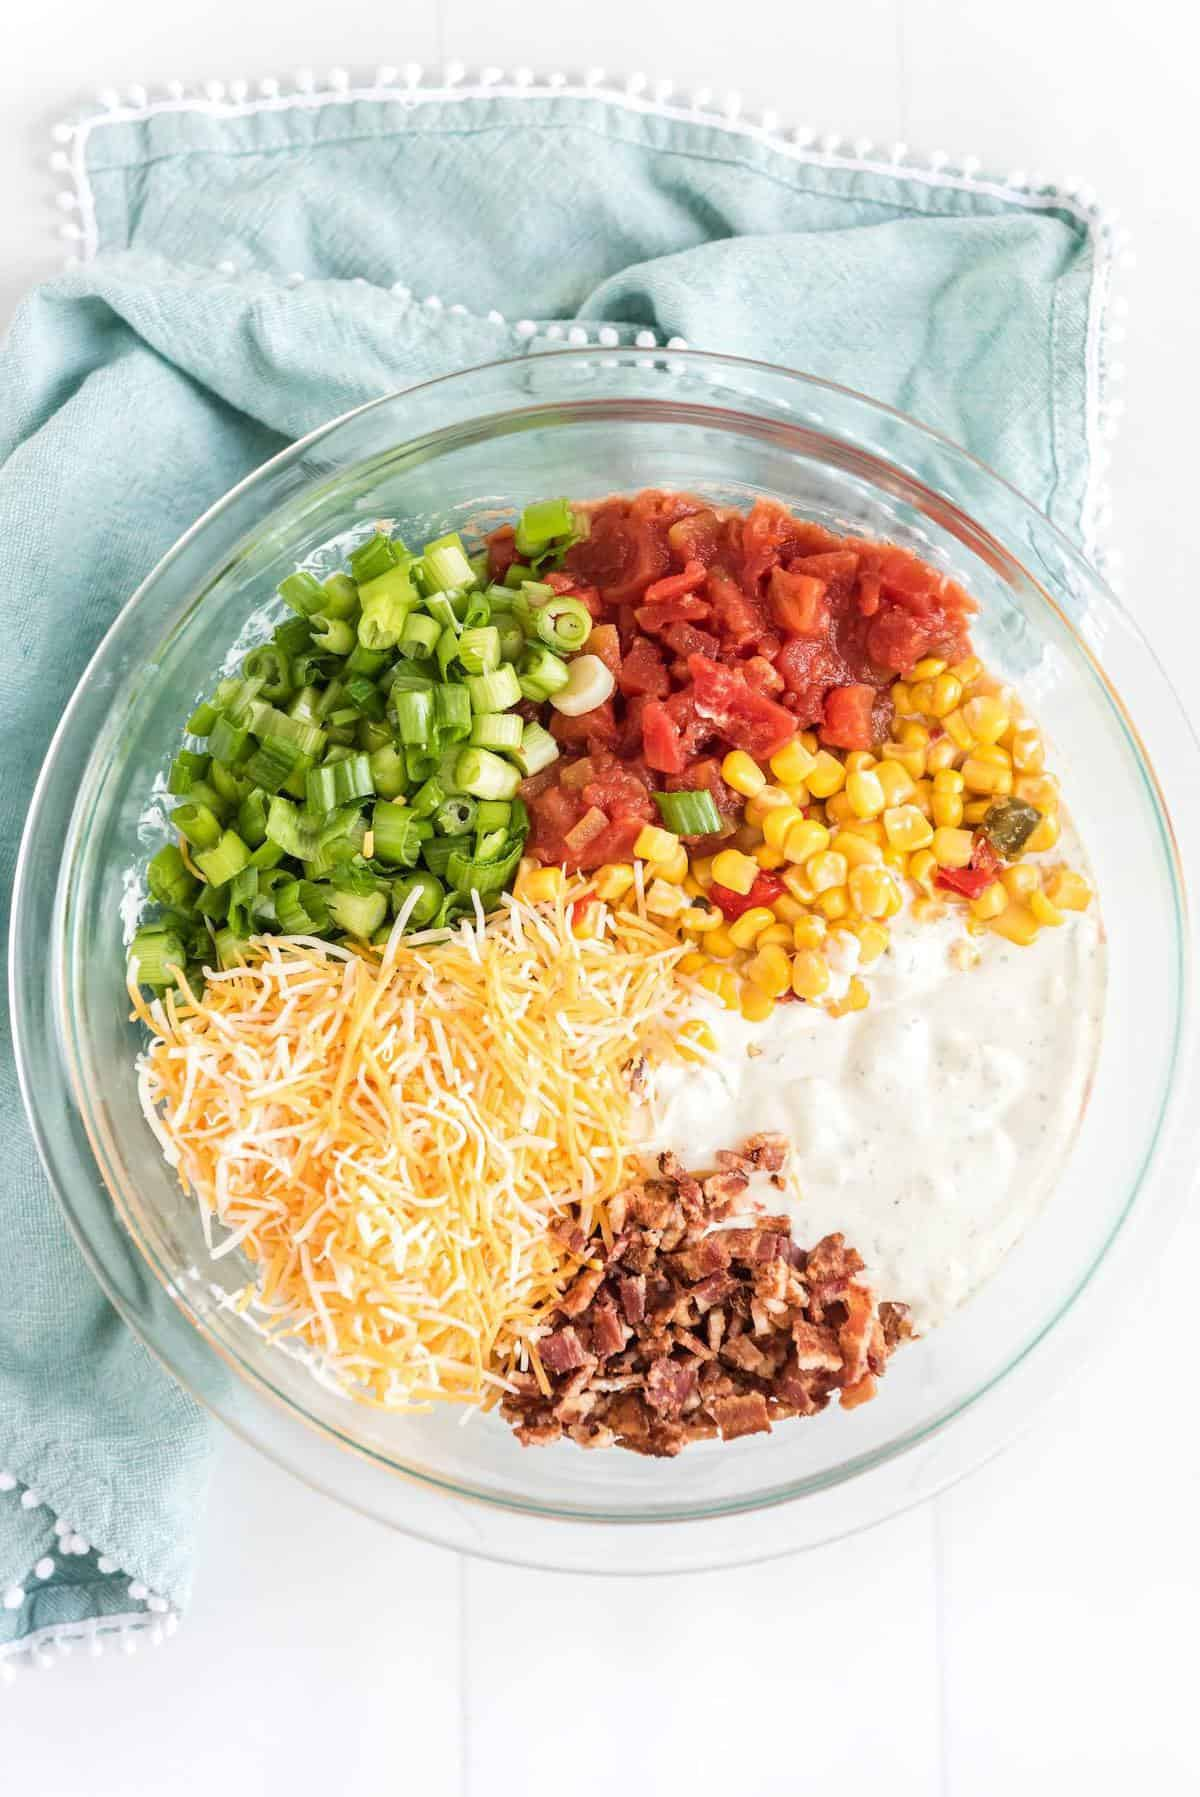 add in shredded Mexican cheese, chopped green onions, Roten, corn and bacon